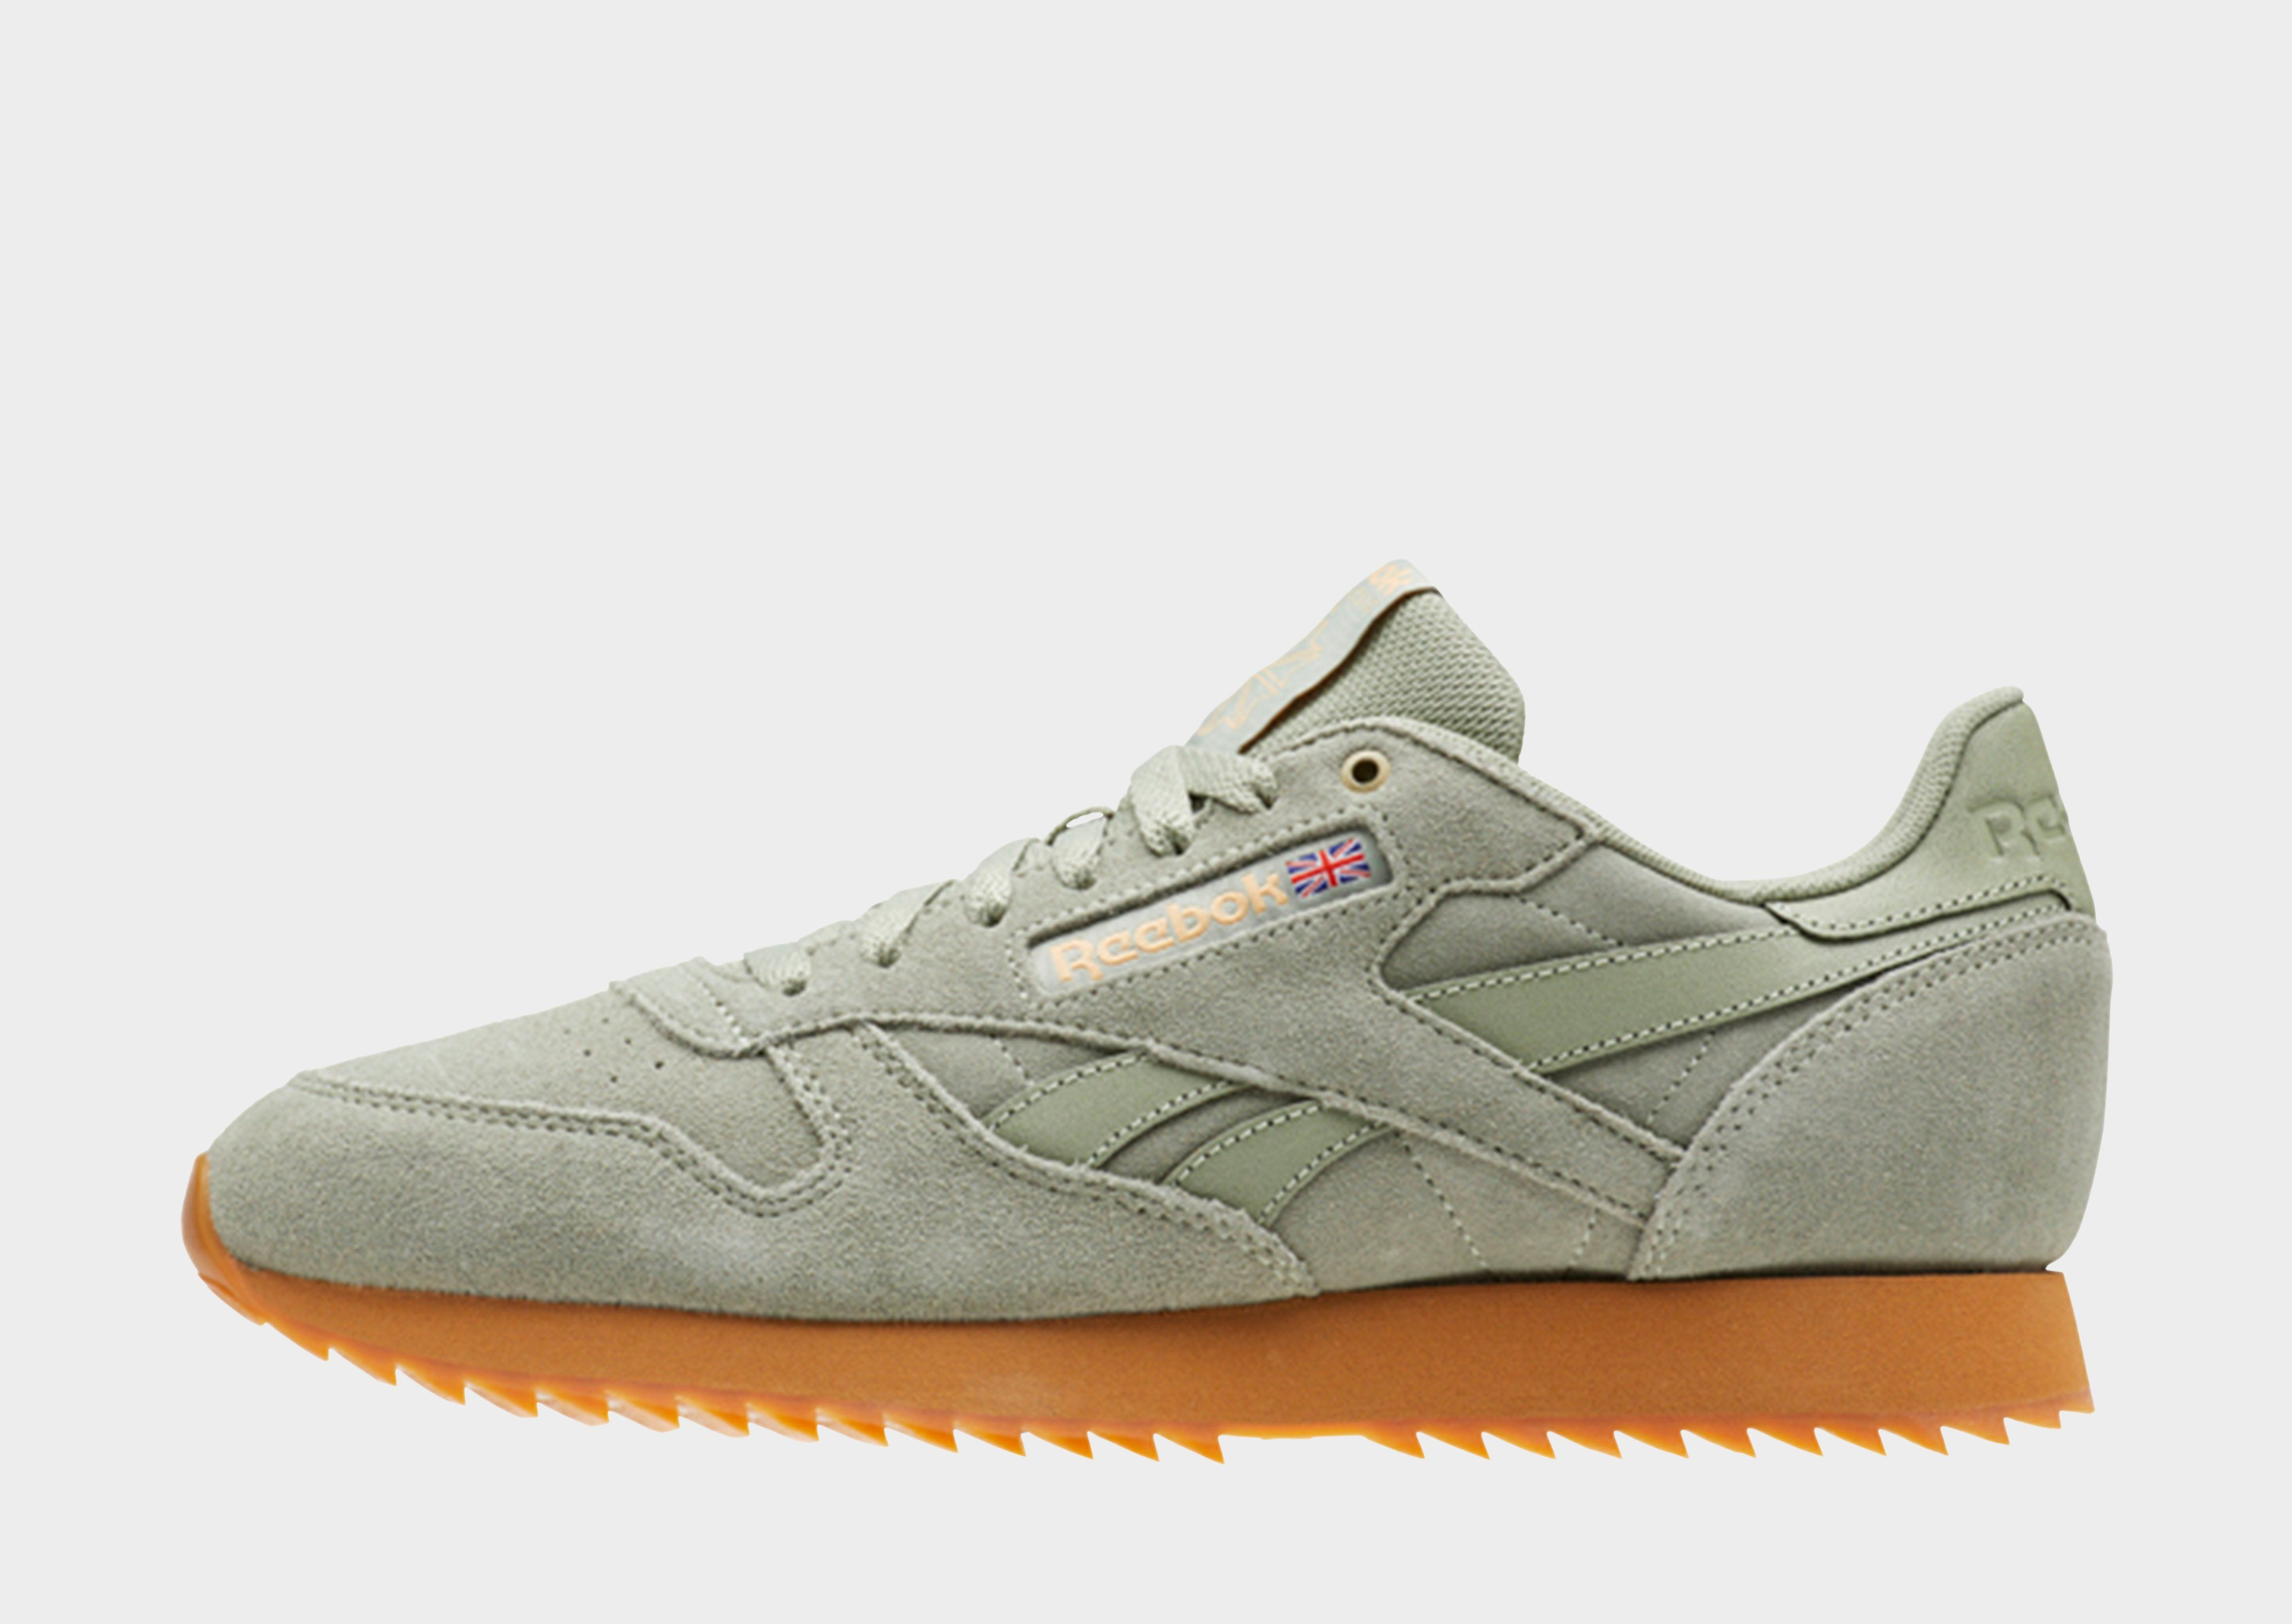 0b521281c67 REEBOK Classic Leather Montana Cans